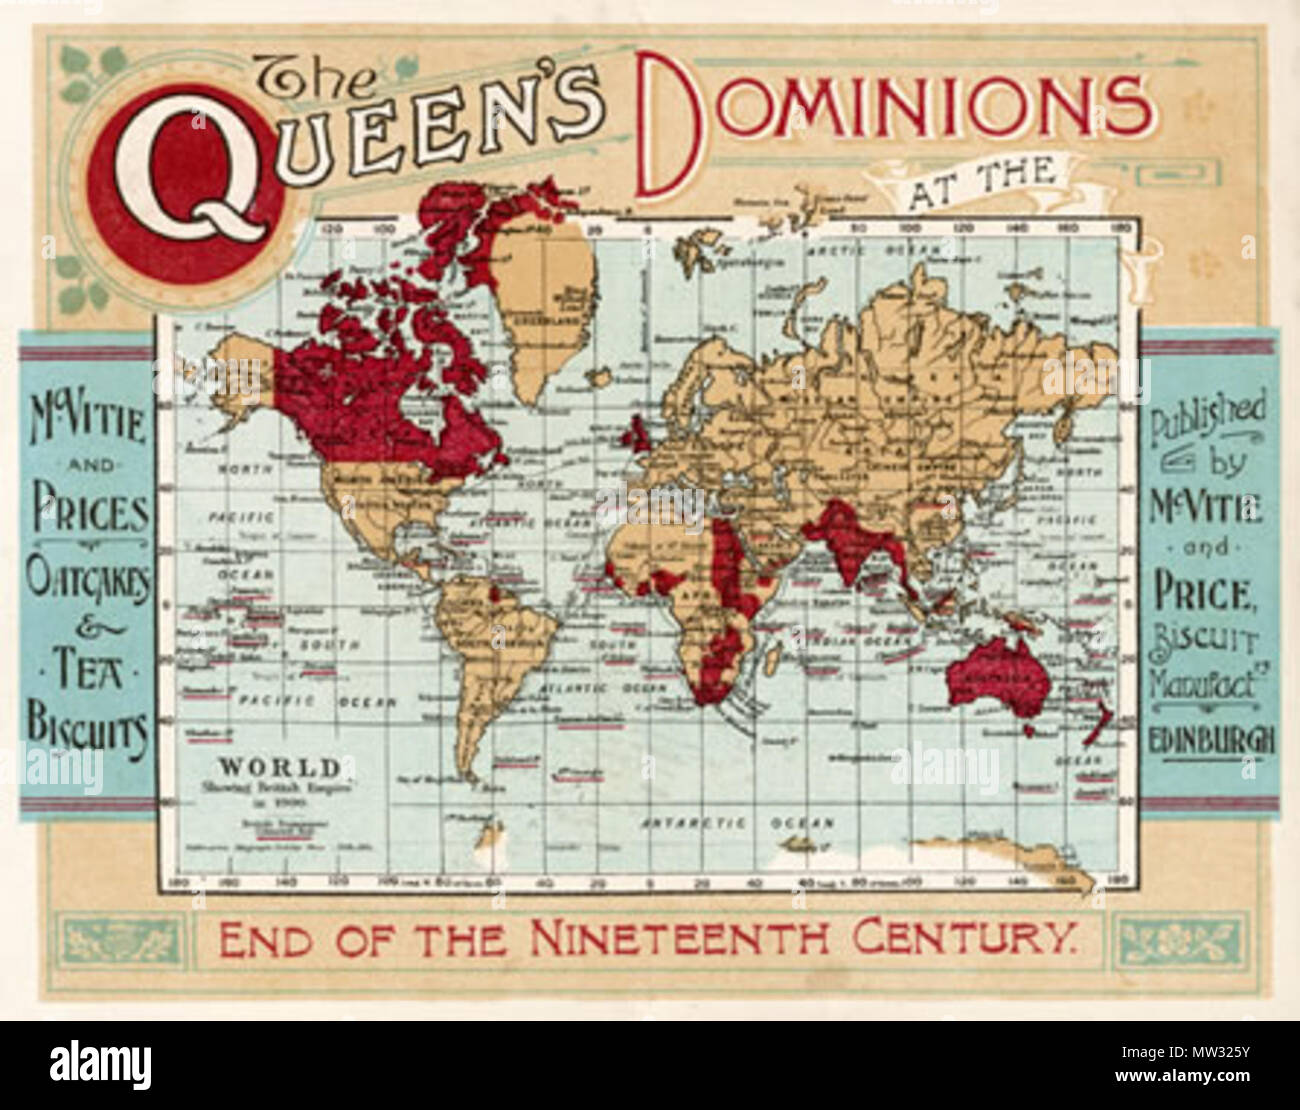 . World map of the Queen's Dominions at the end of the nineteenth century . 1898. McVitie and Price 602 The-queens-dominions - Stock Image